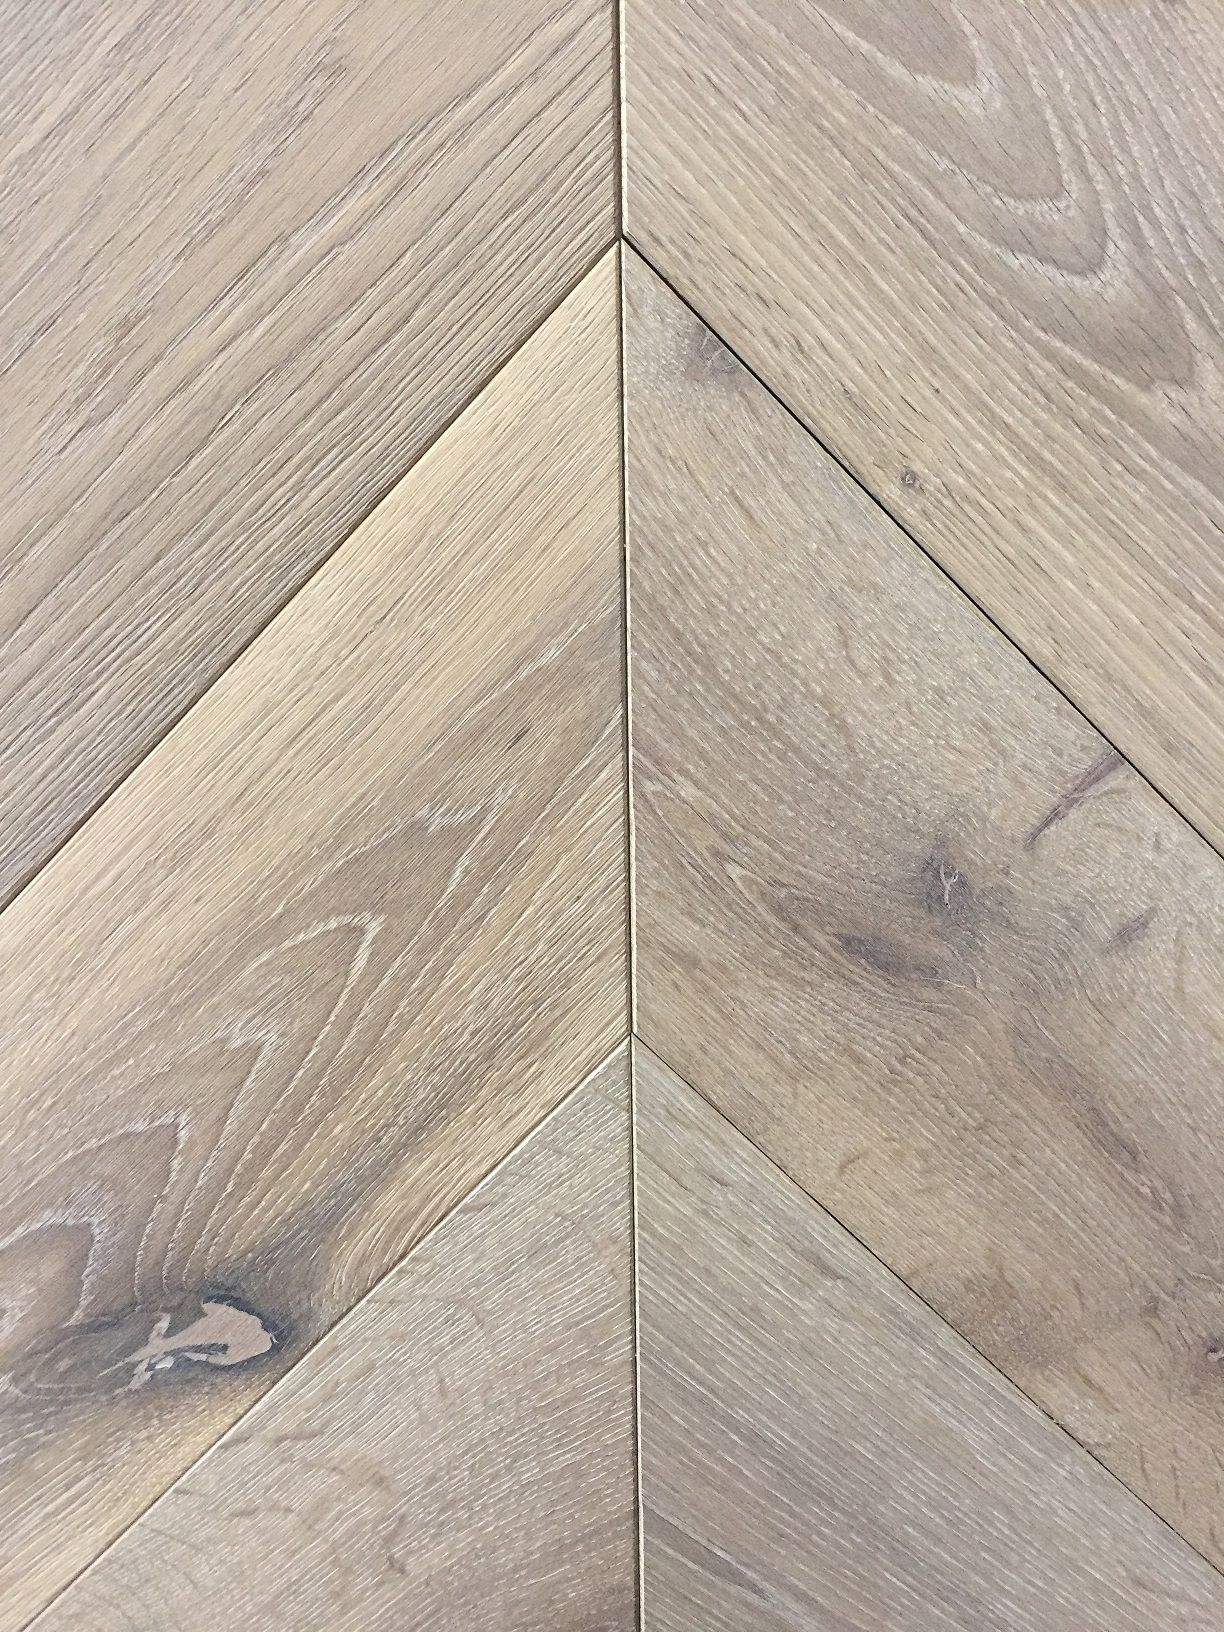 SILVER GREY  Chevron engineered oak parquet flooring  Light Brushed     Chevron engineered oak parquet flooring  Light Brushed  Special treatment   grey oil  Free engineered wood samples sent daily  Wood flooring delivery  within